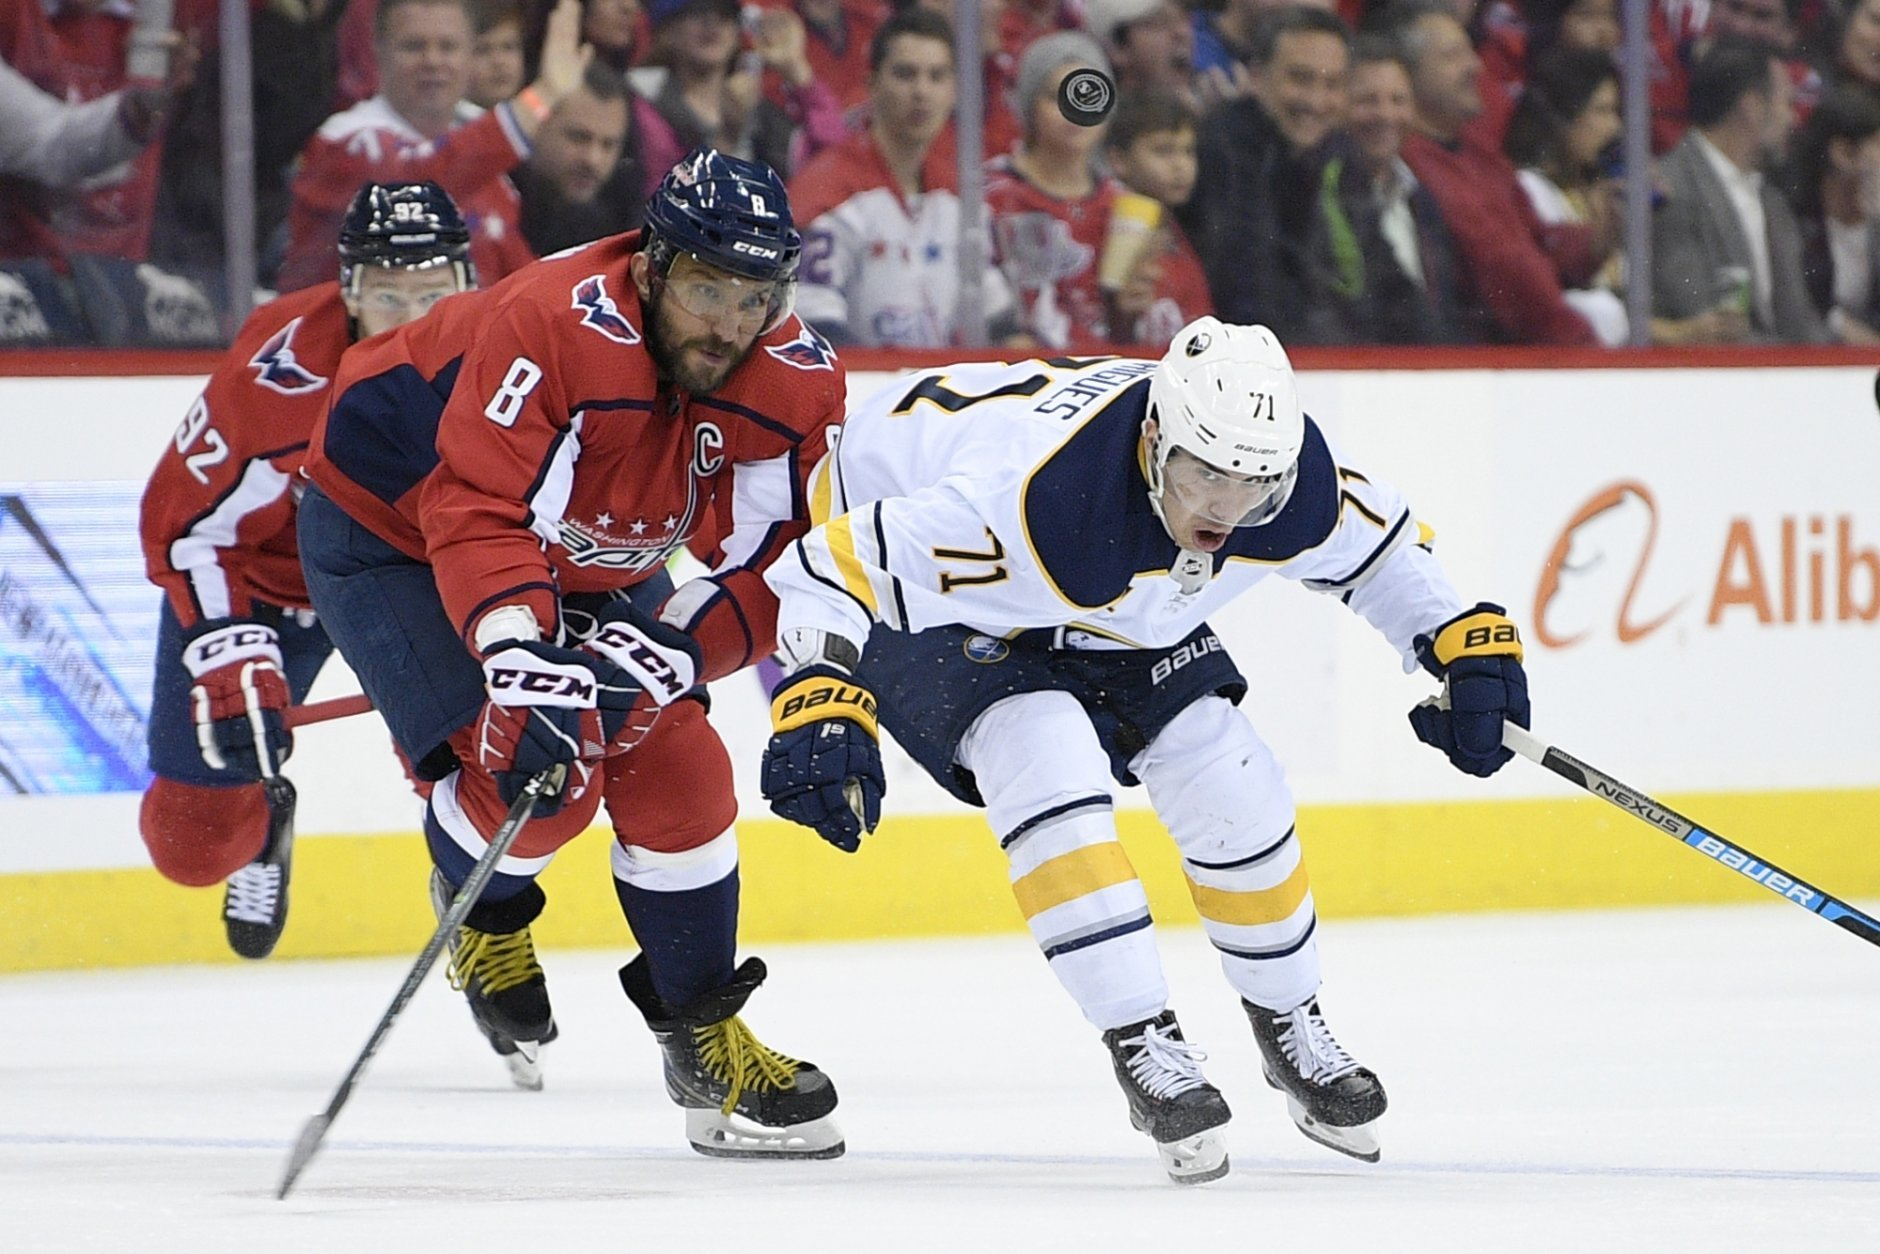 Washington Capitals left wing Alex Ovechkin (8), of Russia, battles for the puck against Buffalo Sabres left wing Evan Rodrigues (71) during the second period of an NHL hockey game, Friday, Dec. 21, 2018, in Washington. (AP Photo/Nick Wass)